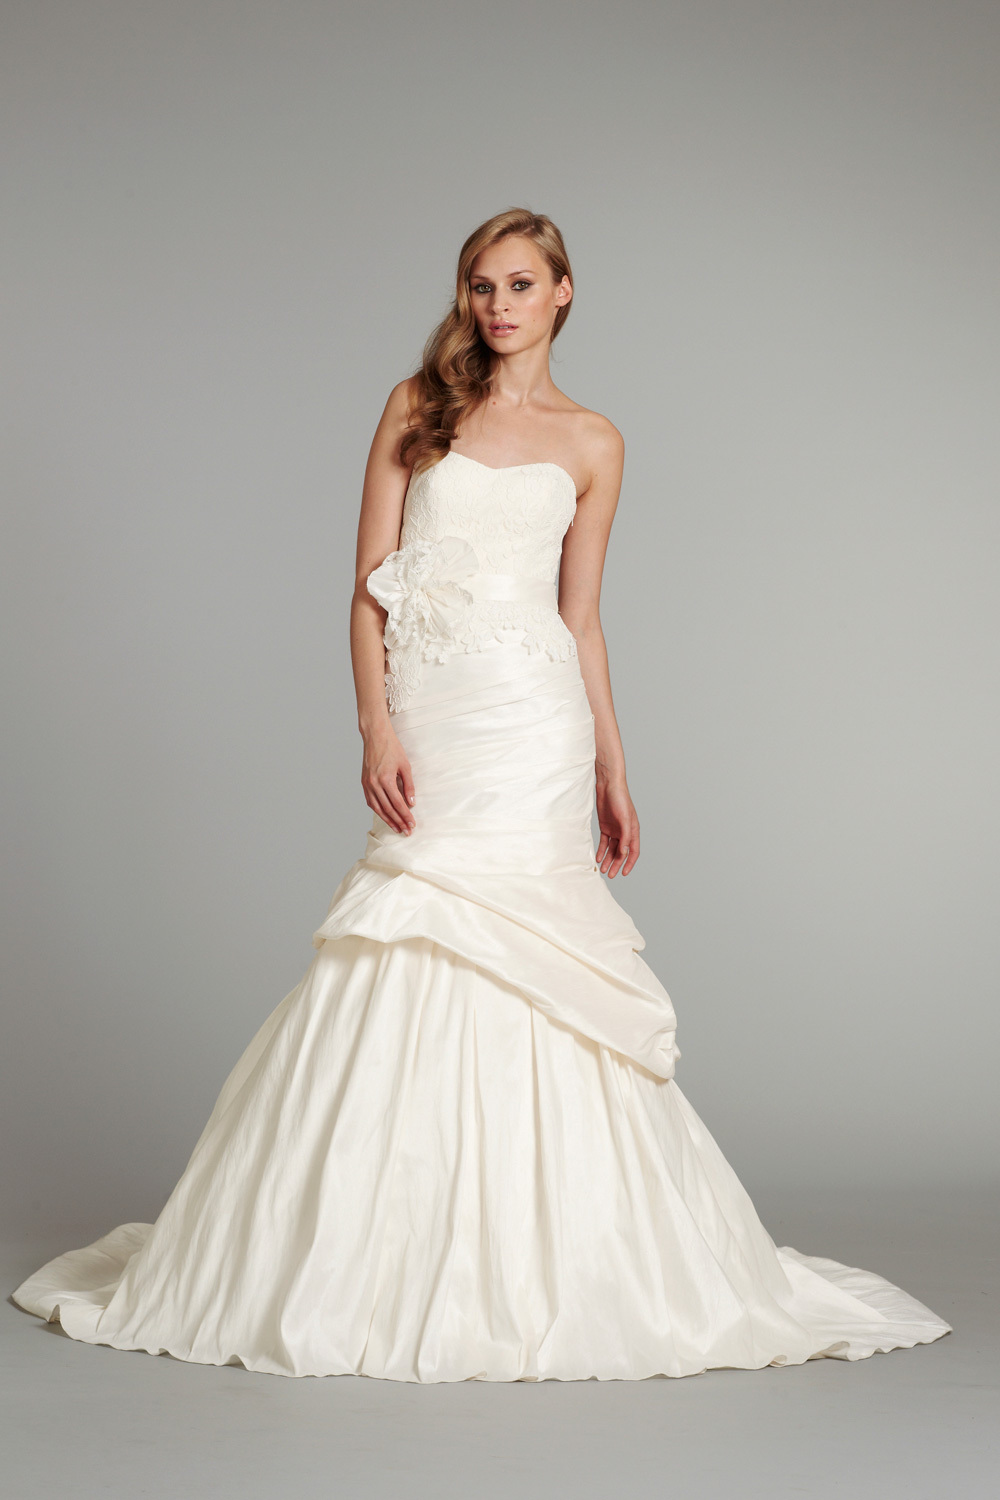 new bridal gowns fall 2012 wedding dress hayley paige for JLM couture Lulu